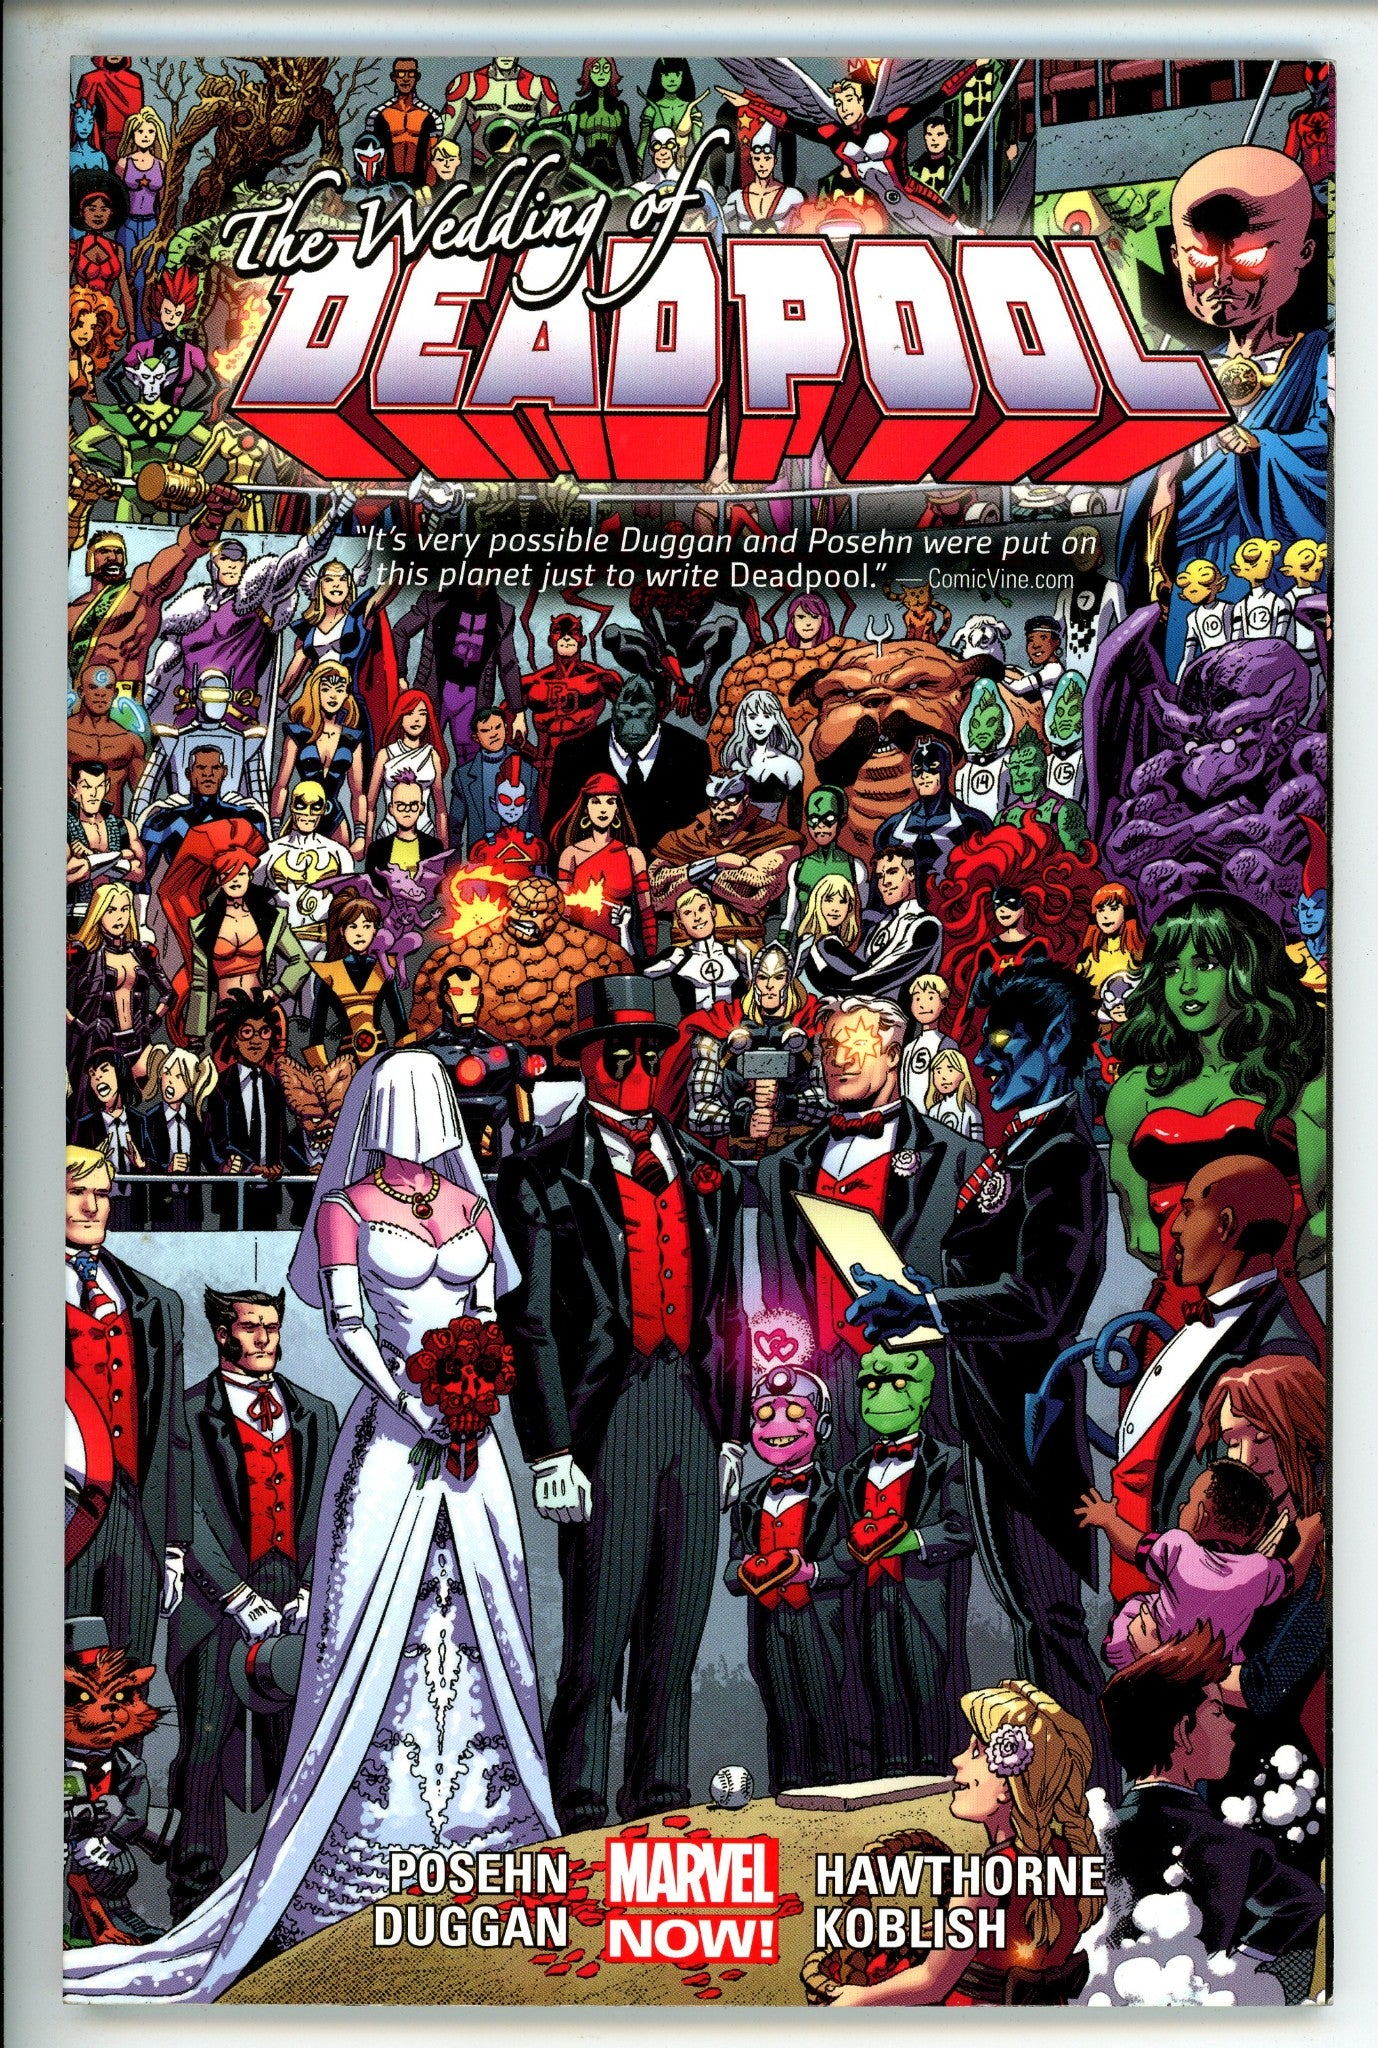 Deadpool Vol 5 the Wedding of Deadpool TP